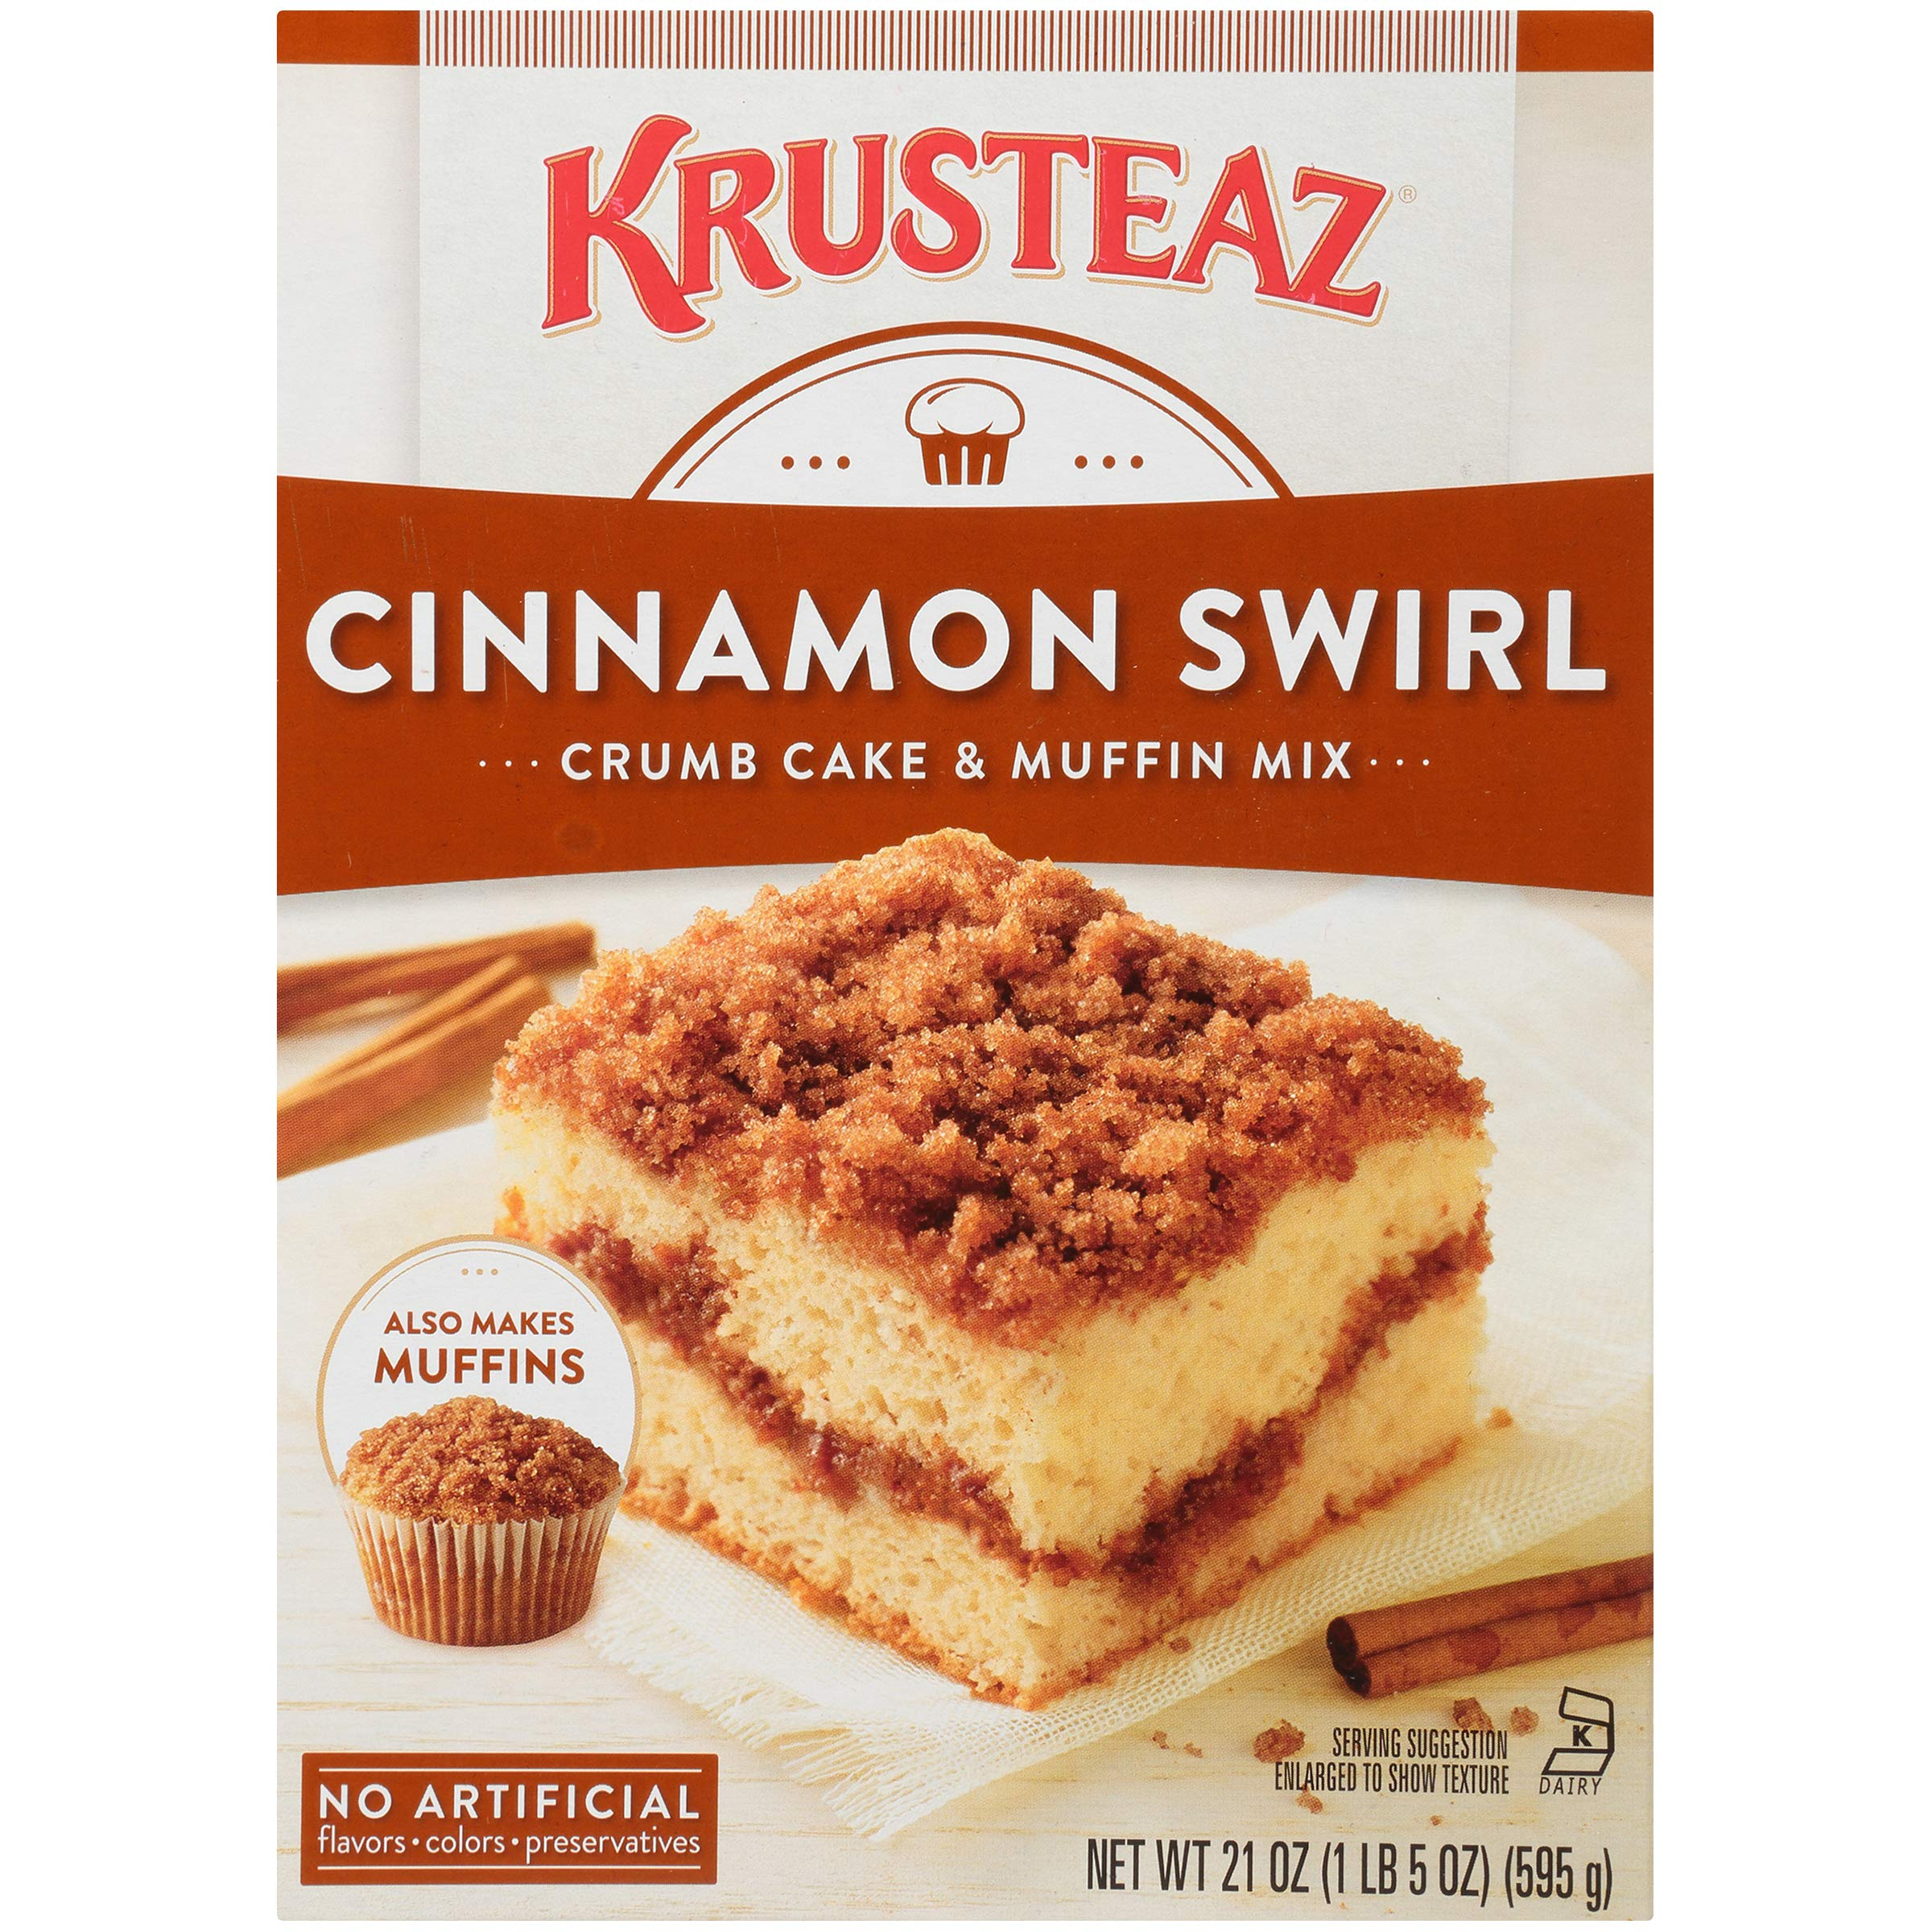 Krusteaz Cinnamon Swirl Crumb Cake and Muffin Mix, 21 Ounce